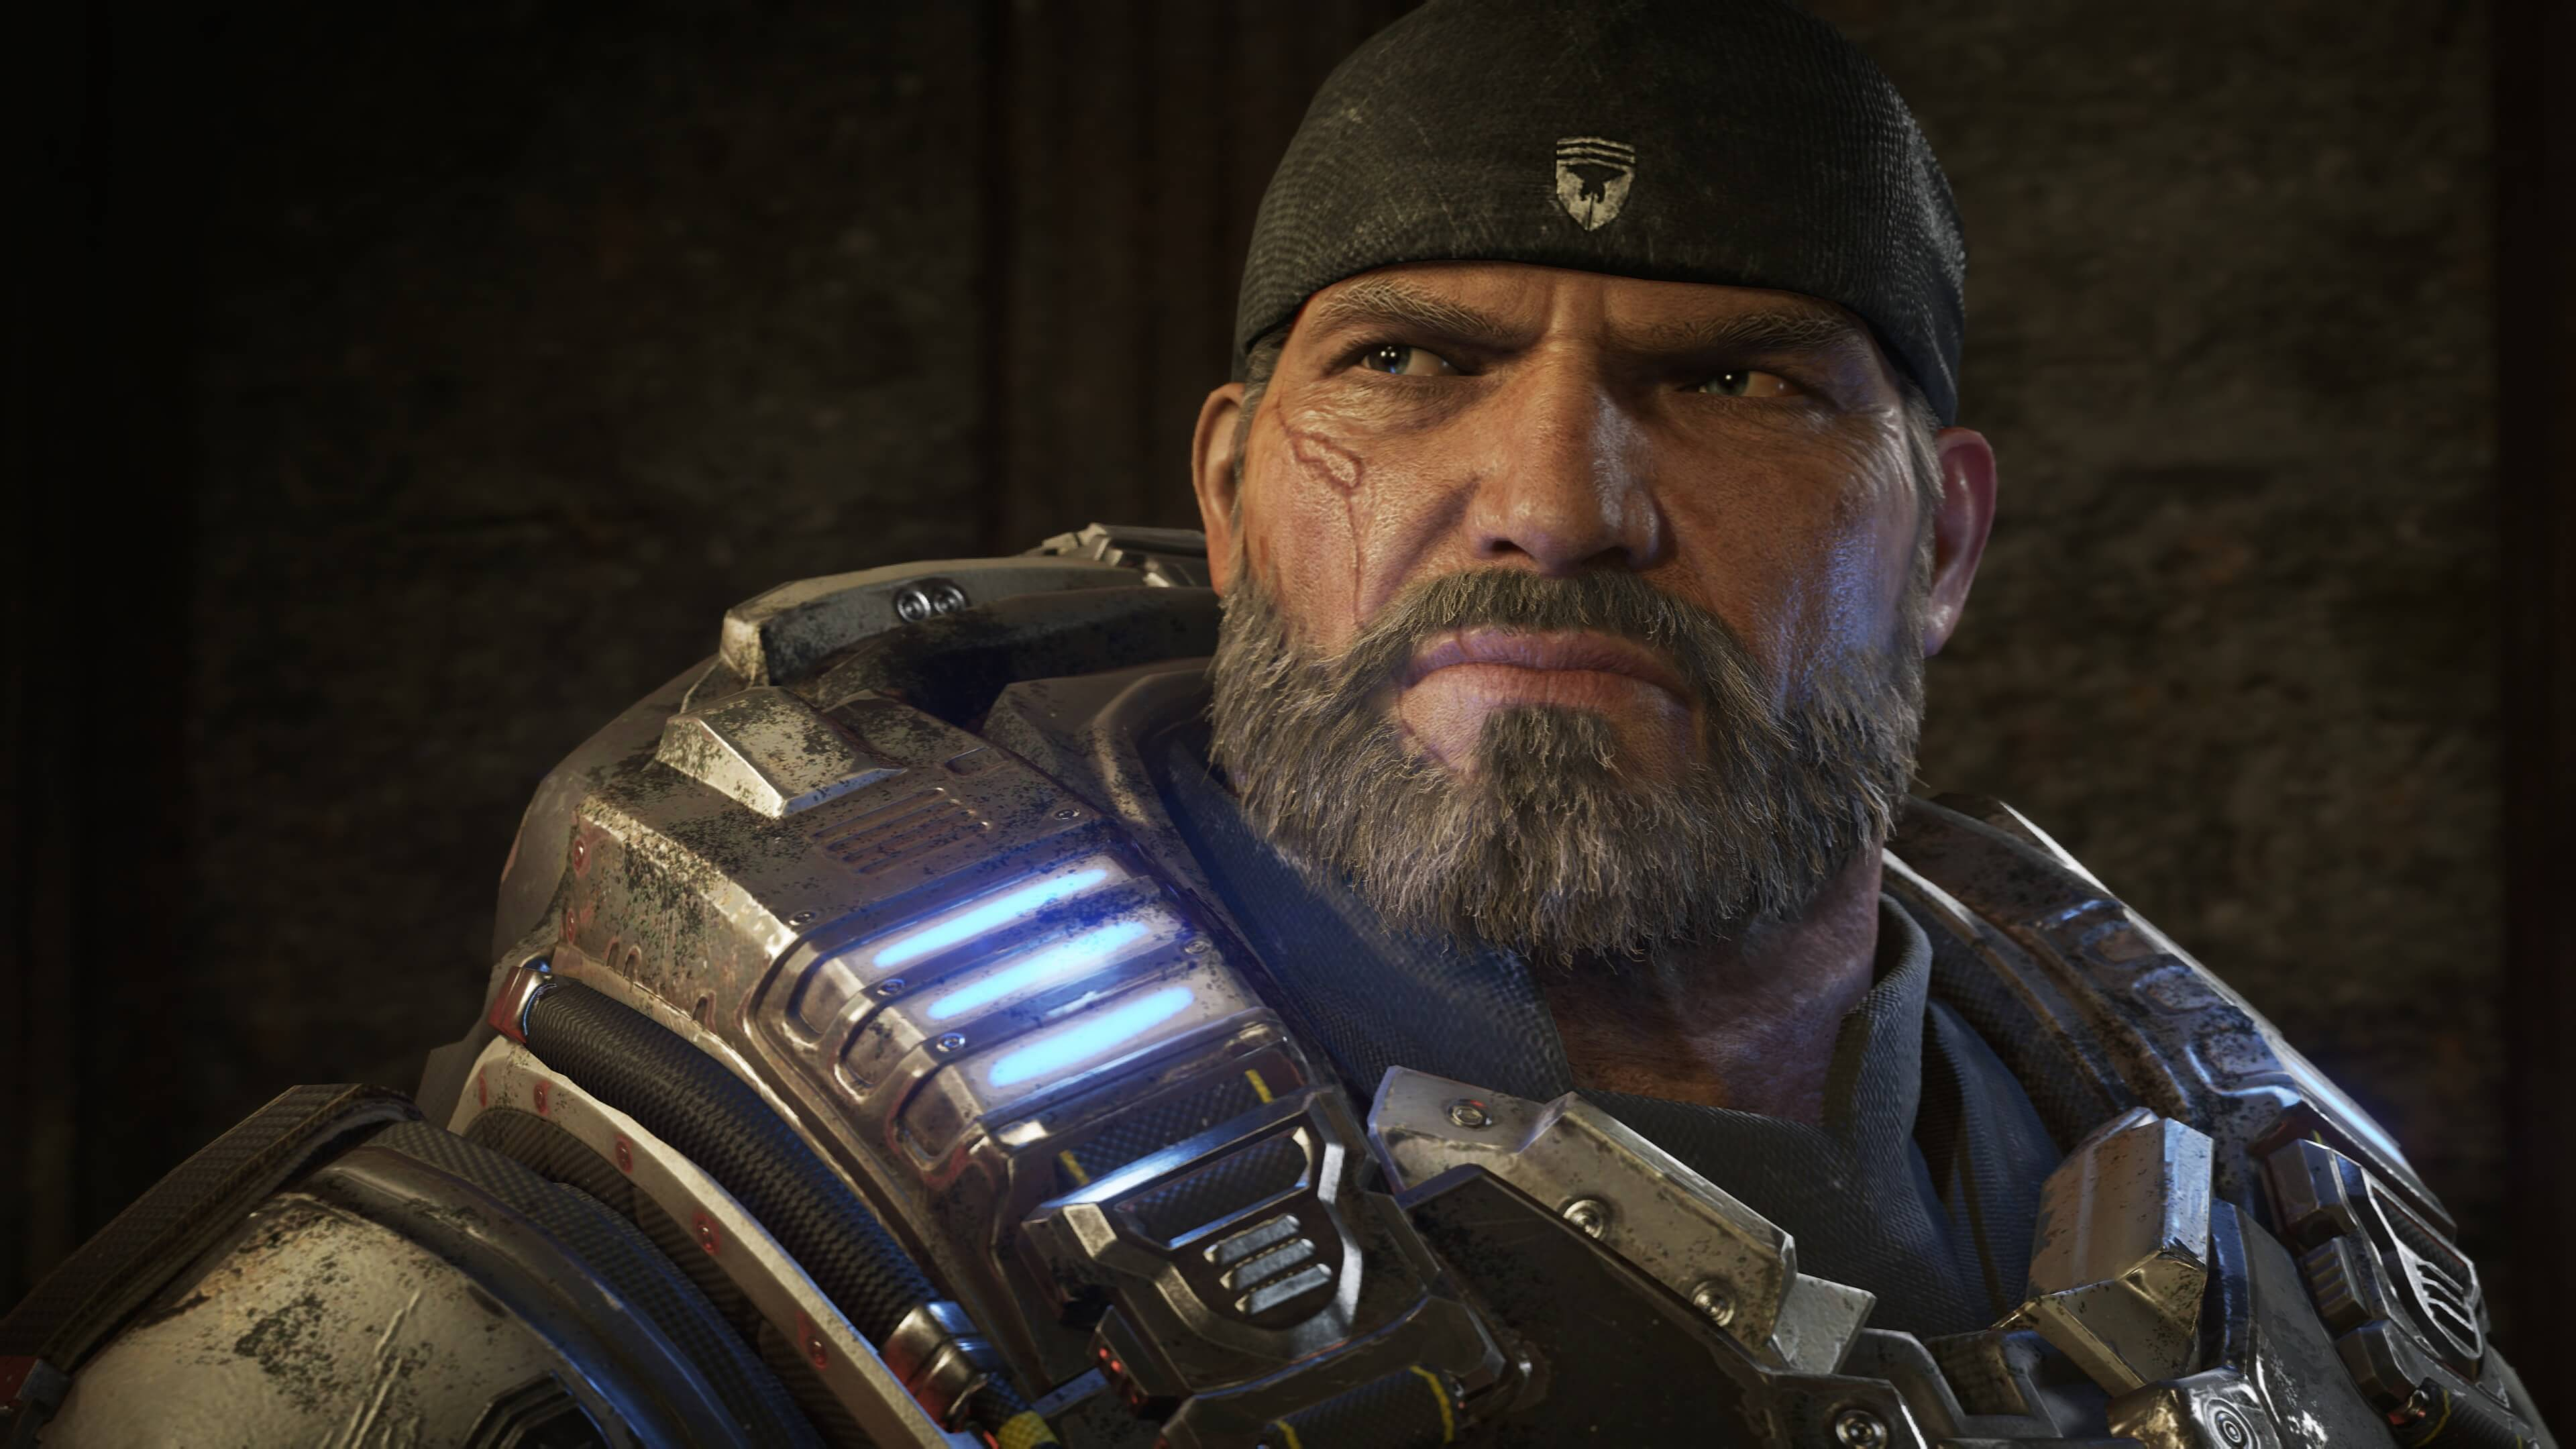 Gears 5 drops tobacco imagery in response to concerns from Truth Initiative screenshot